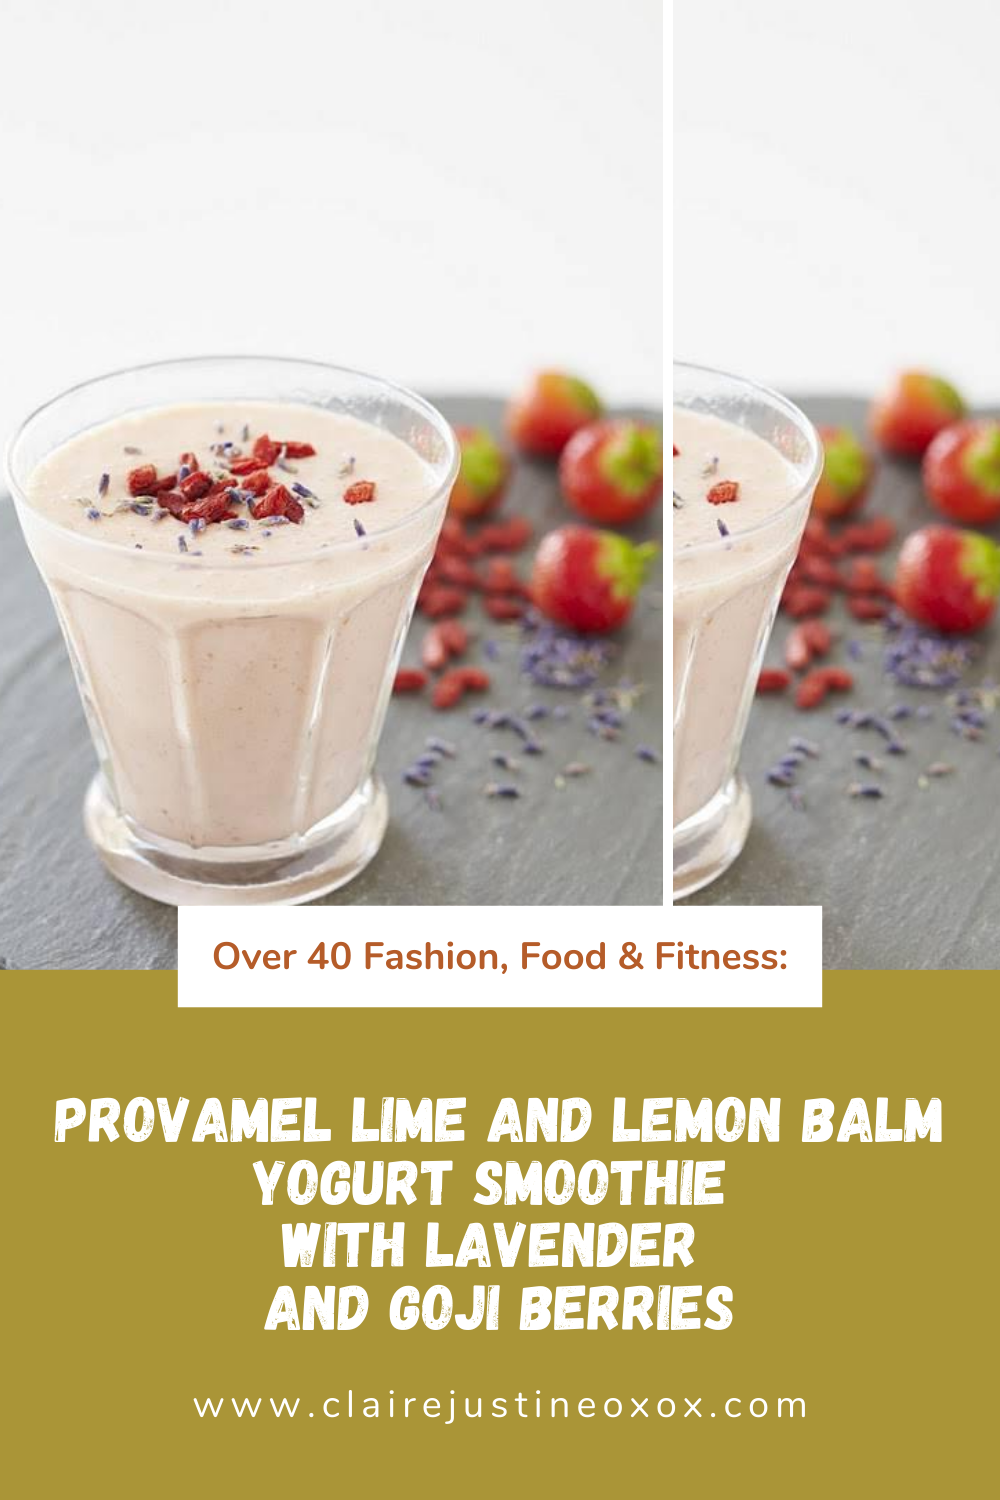 Provamel Lime And Lemon Balm Yogurt Smoothie With Lavender And Goji Berries